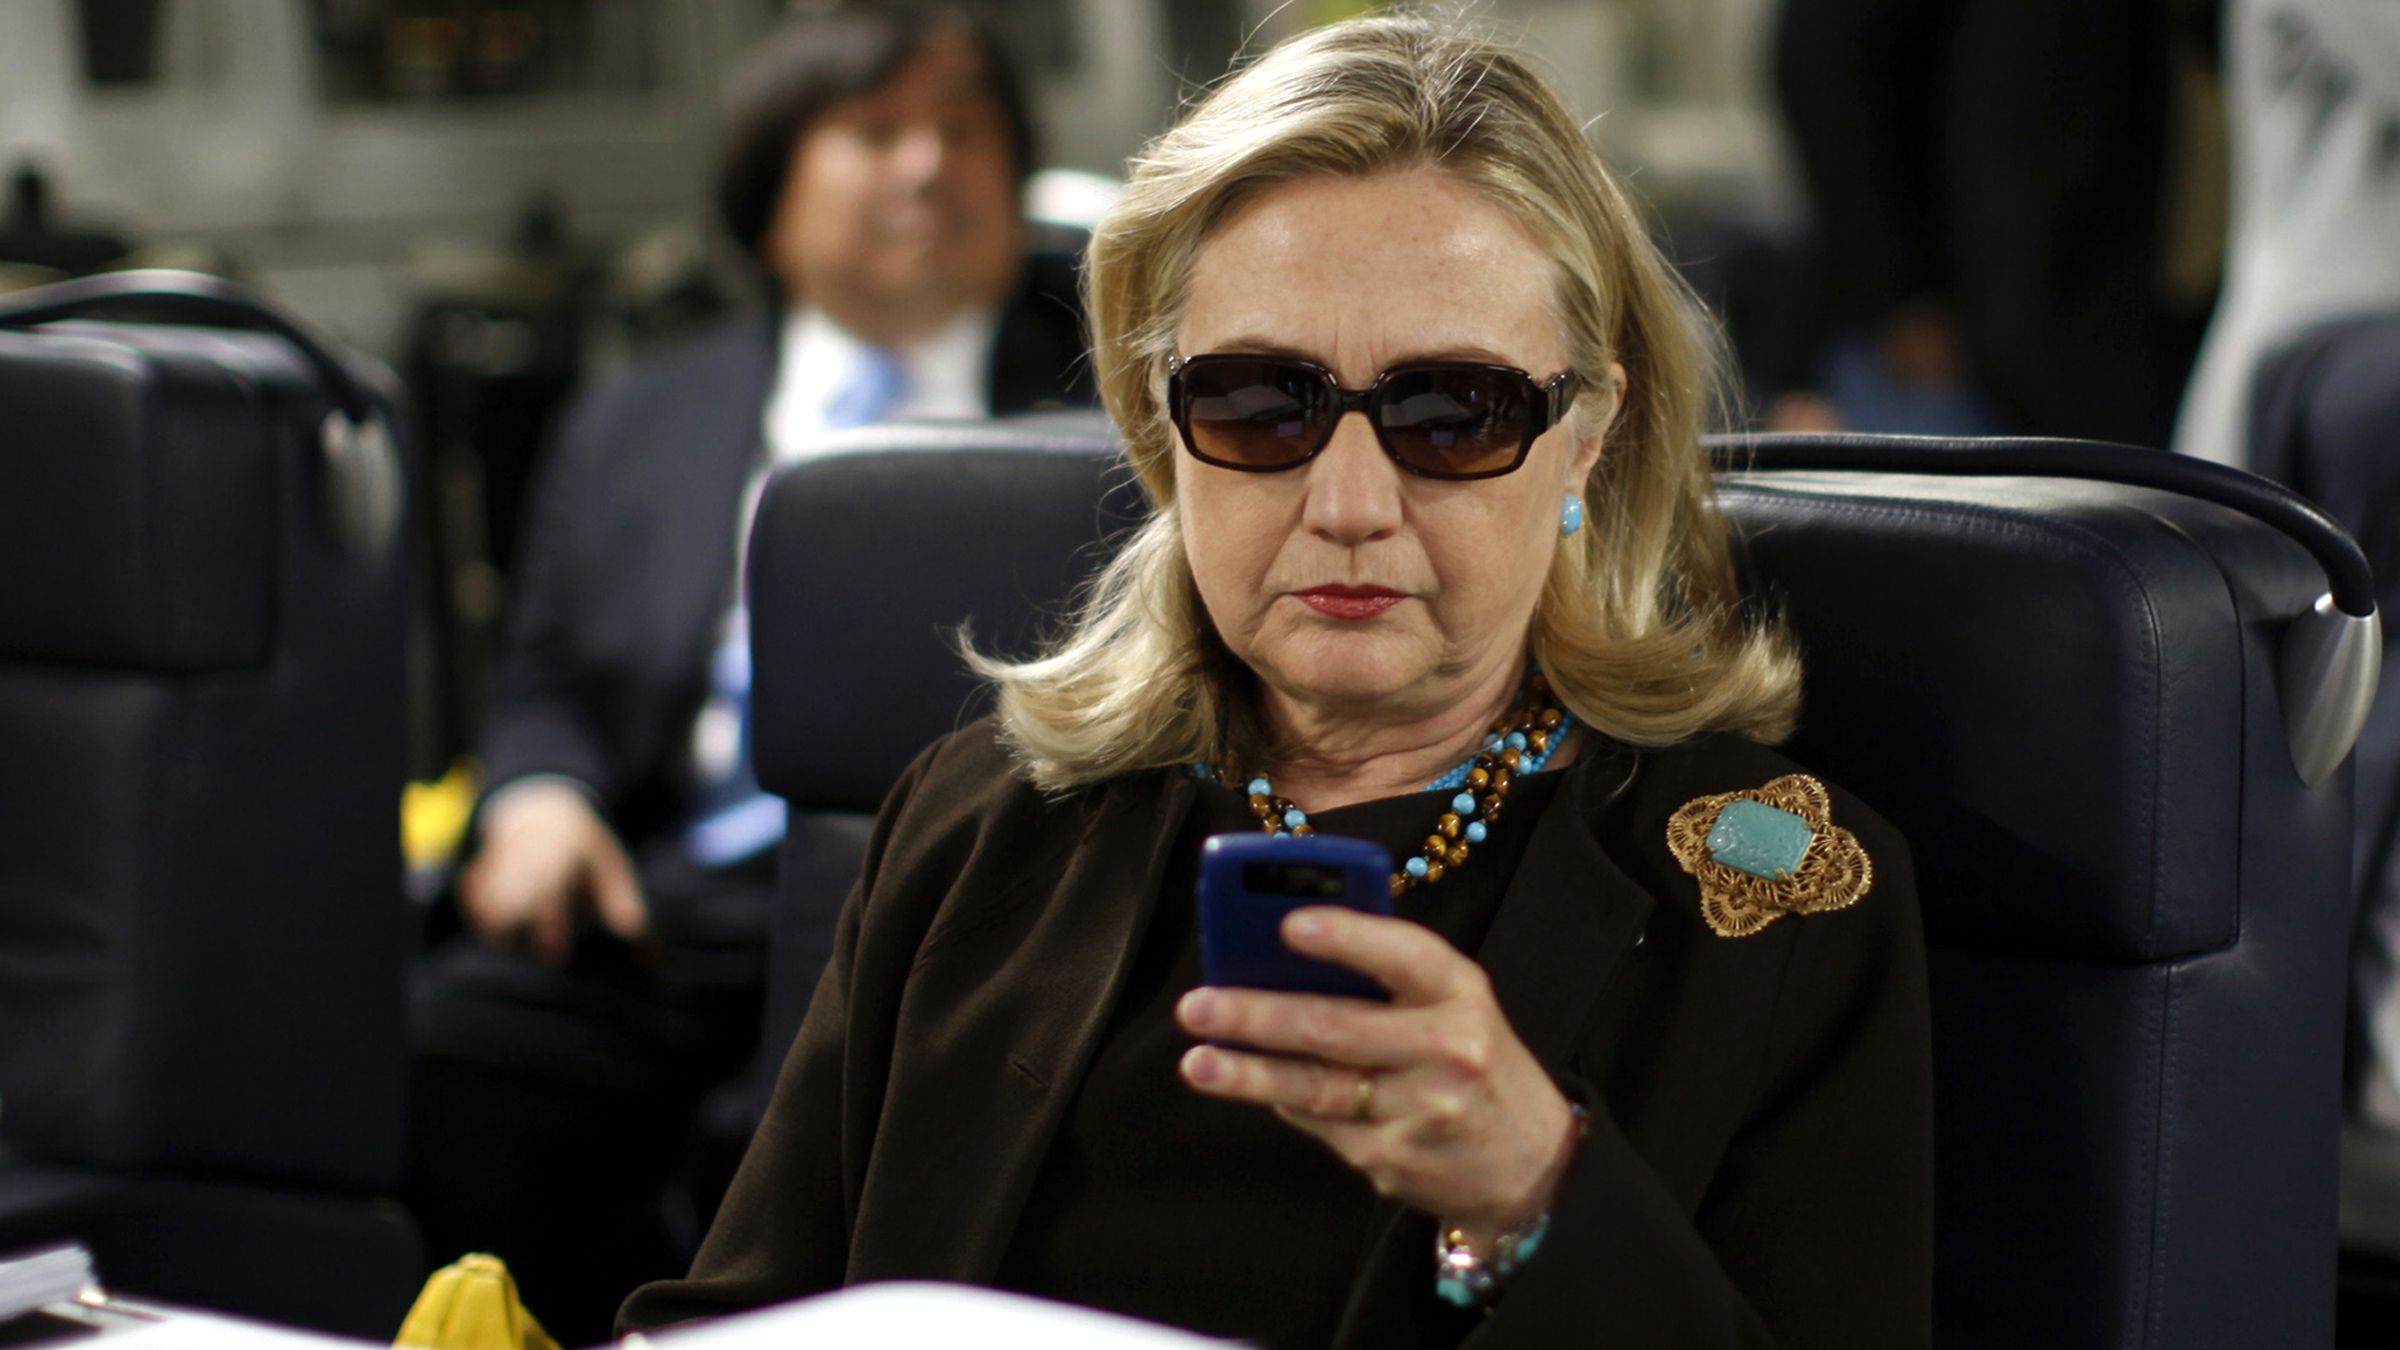 FILE - In this Oct. 18, 2011, file photo, then-Secretary of State Hillary Rodham Clinton checks her Blackberry from a desk inside a C-17 military plane upon her departure from Malta, in the Mediterranean Sea, bound for Tripoli, Libya. The State Department is reopening an internal investigation of possible mishandling of classified information by Hillary Clinton and top aides.